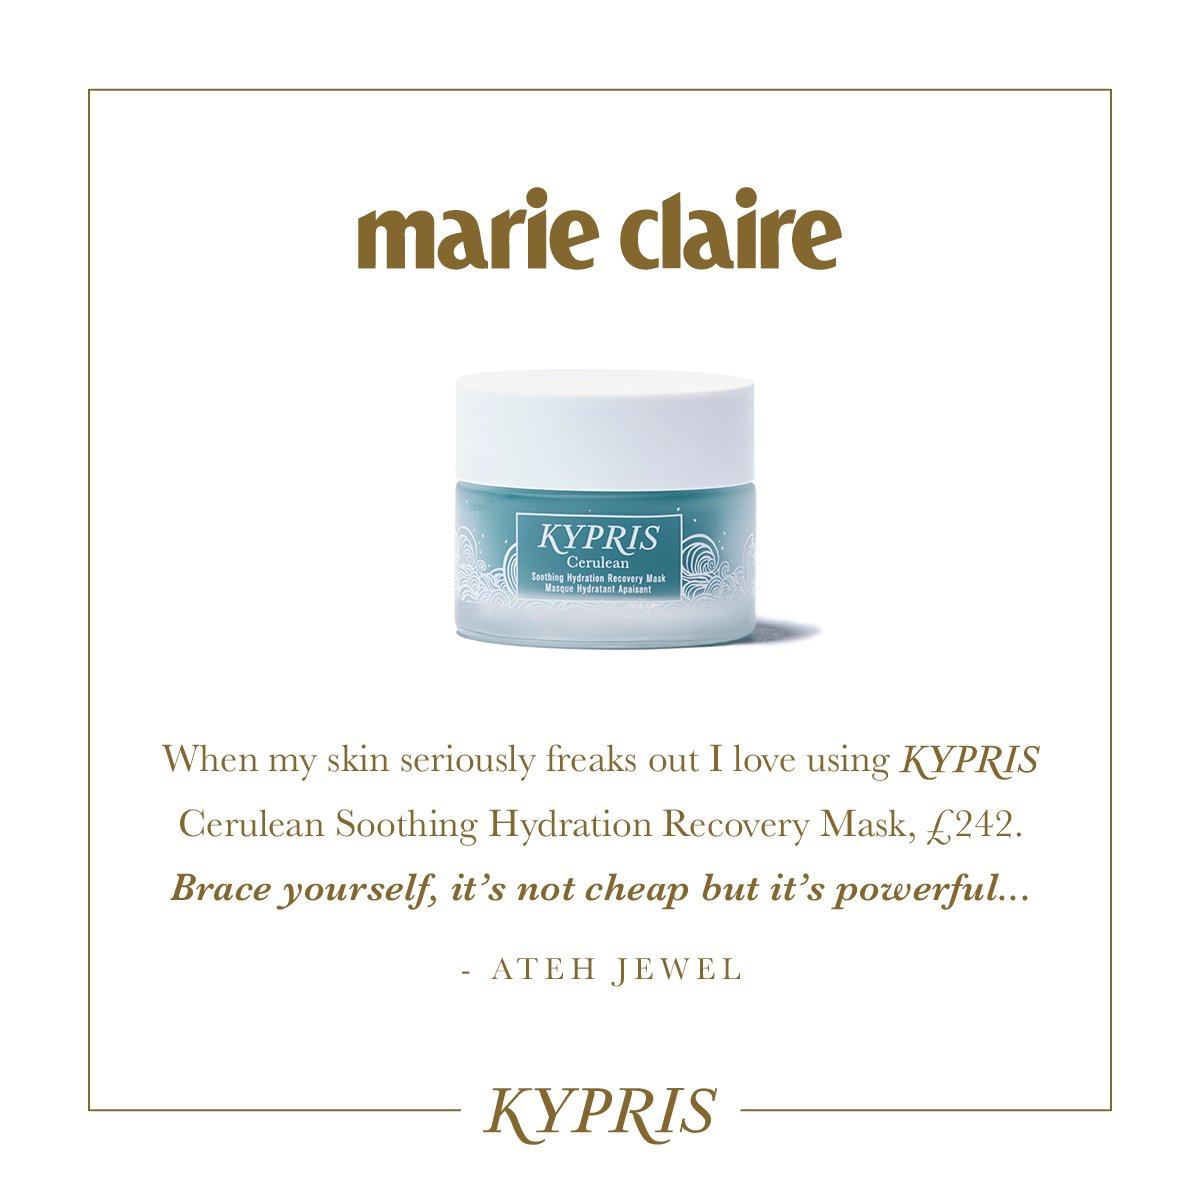 FEATURED  KYPRIS In The Press: Marie Claire